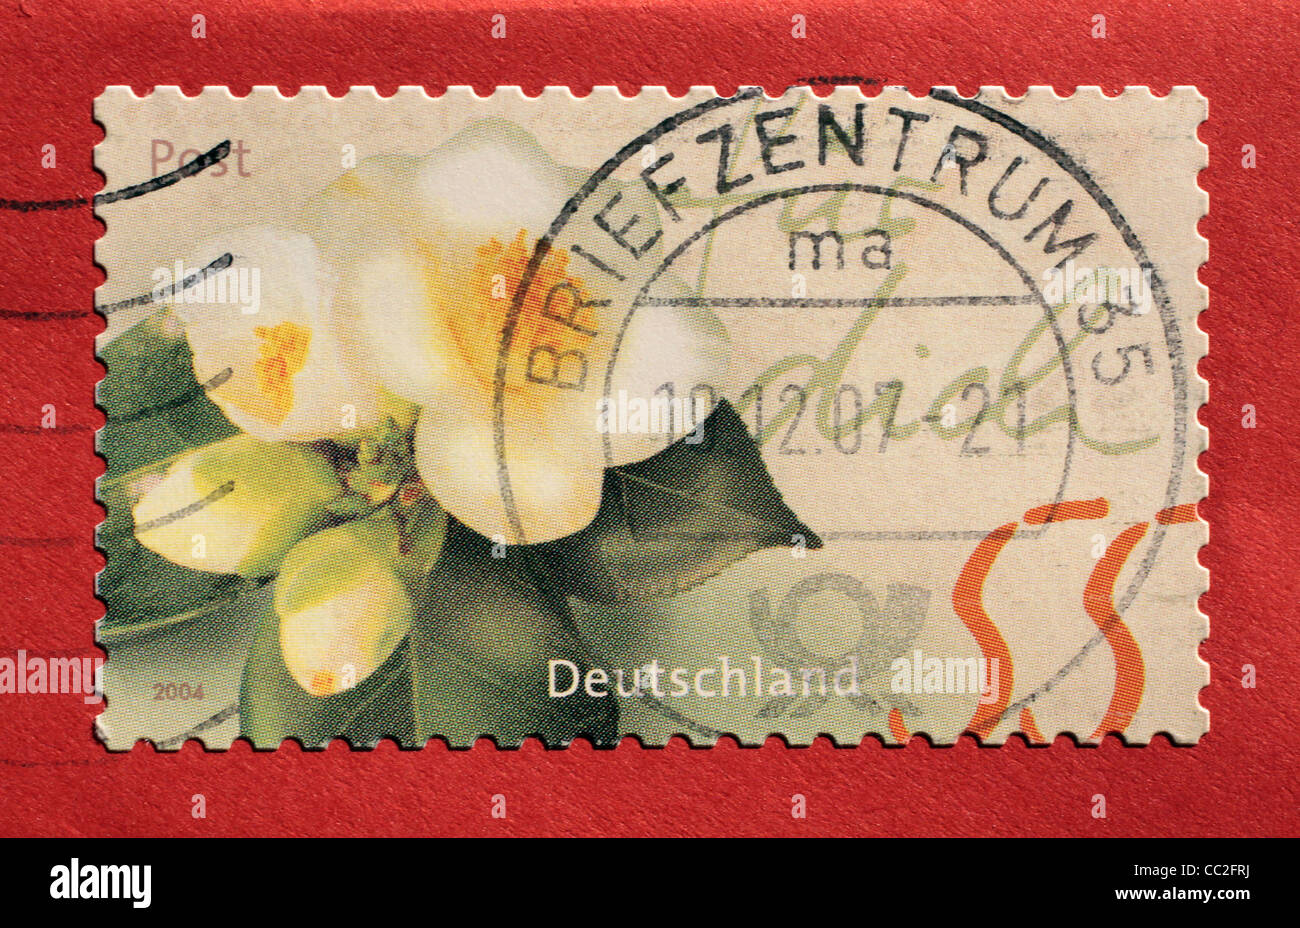 Postage stamp from Germany with red background - Stock Image